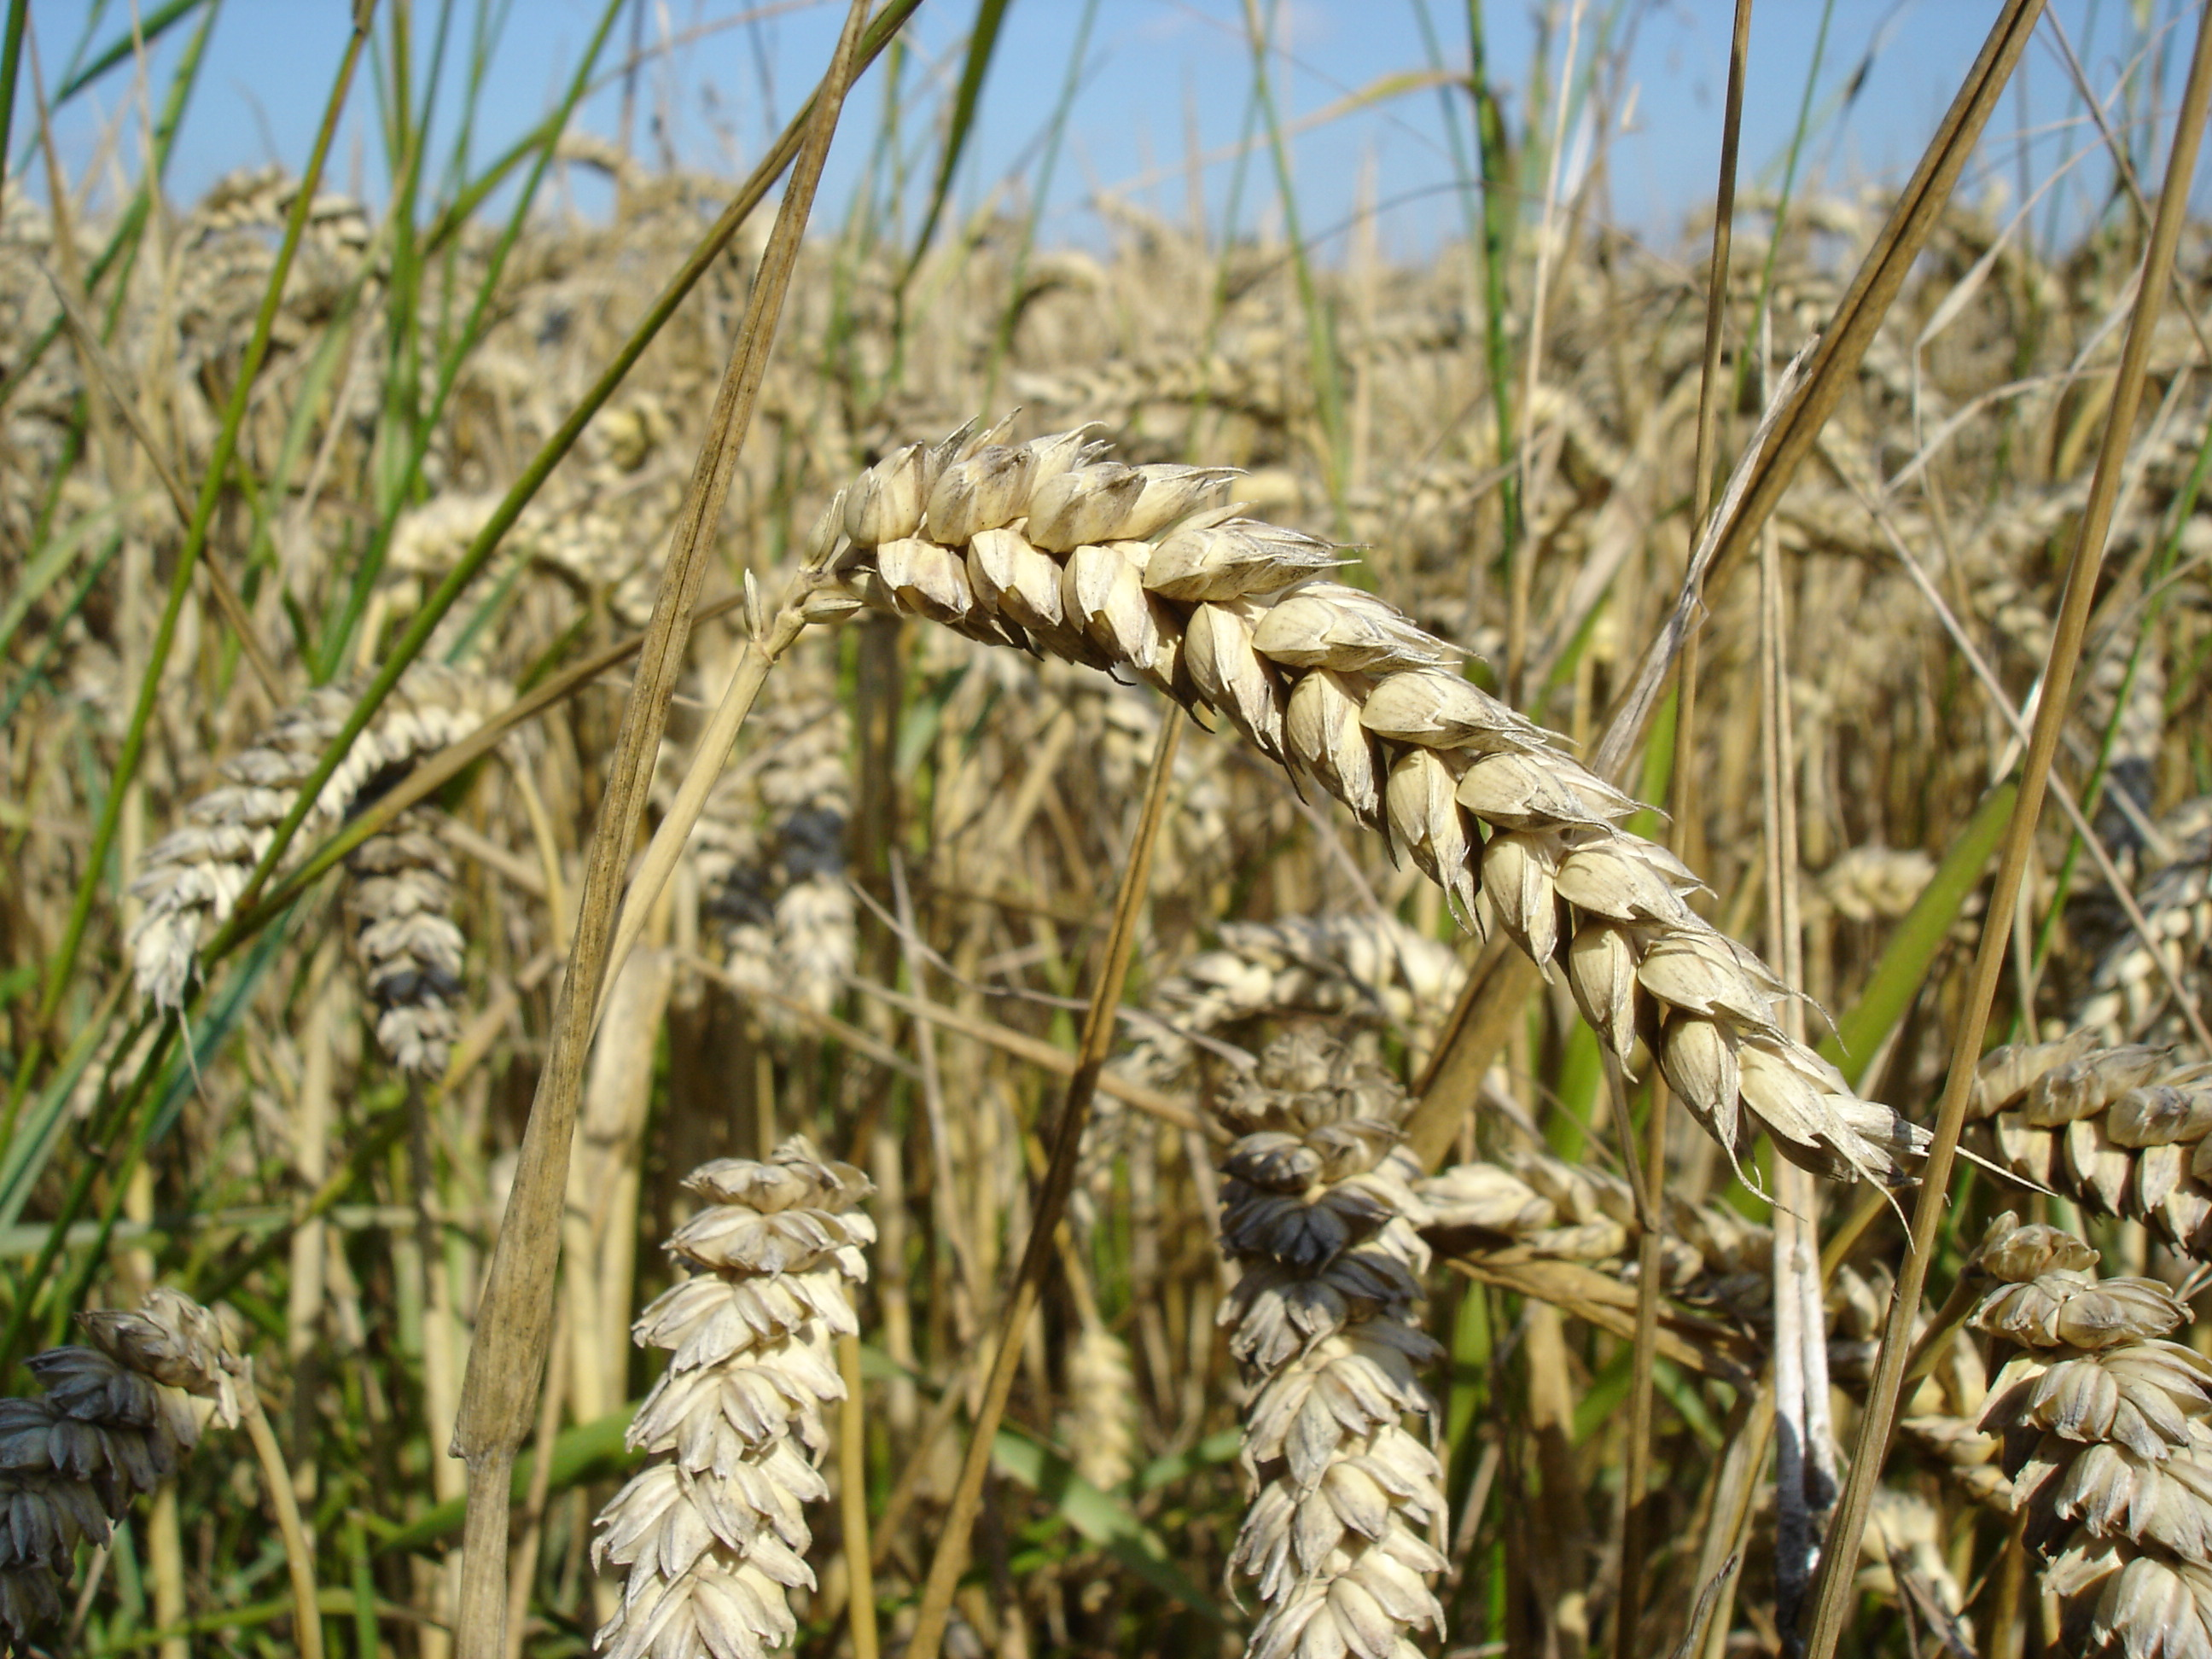 Wheat_close-up